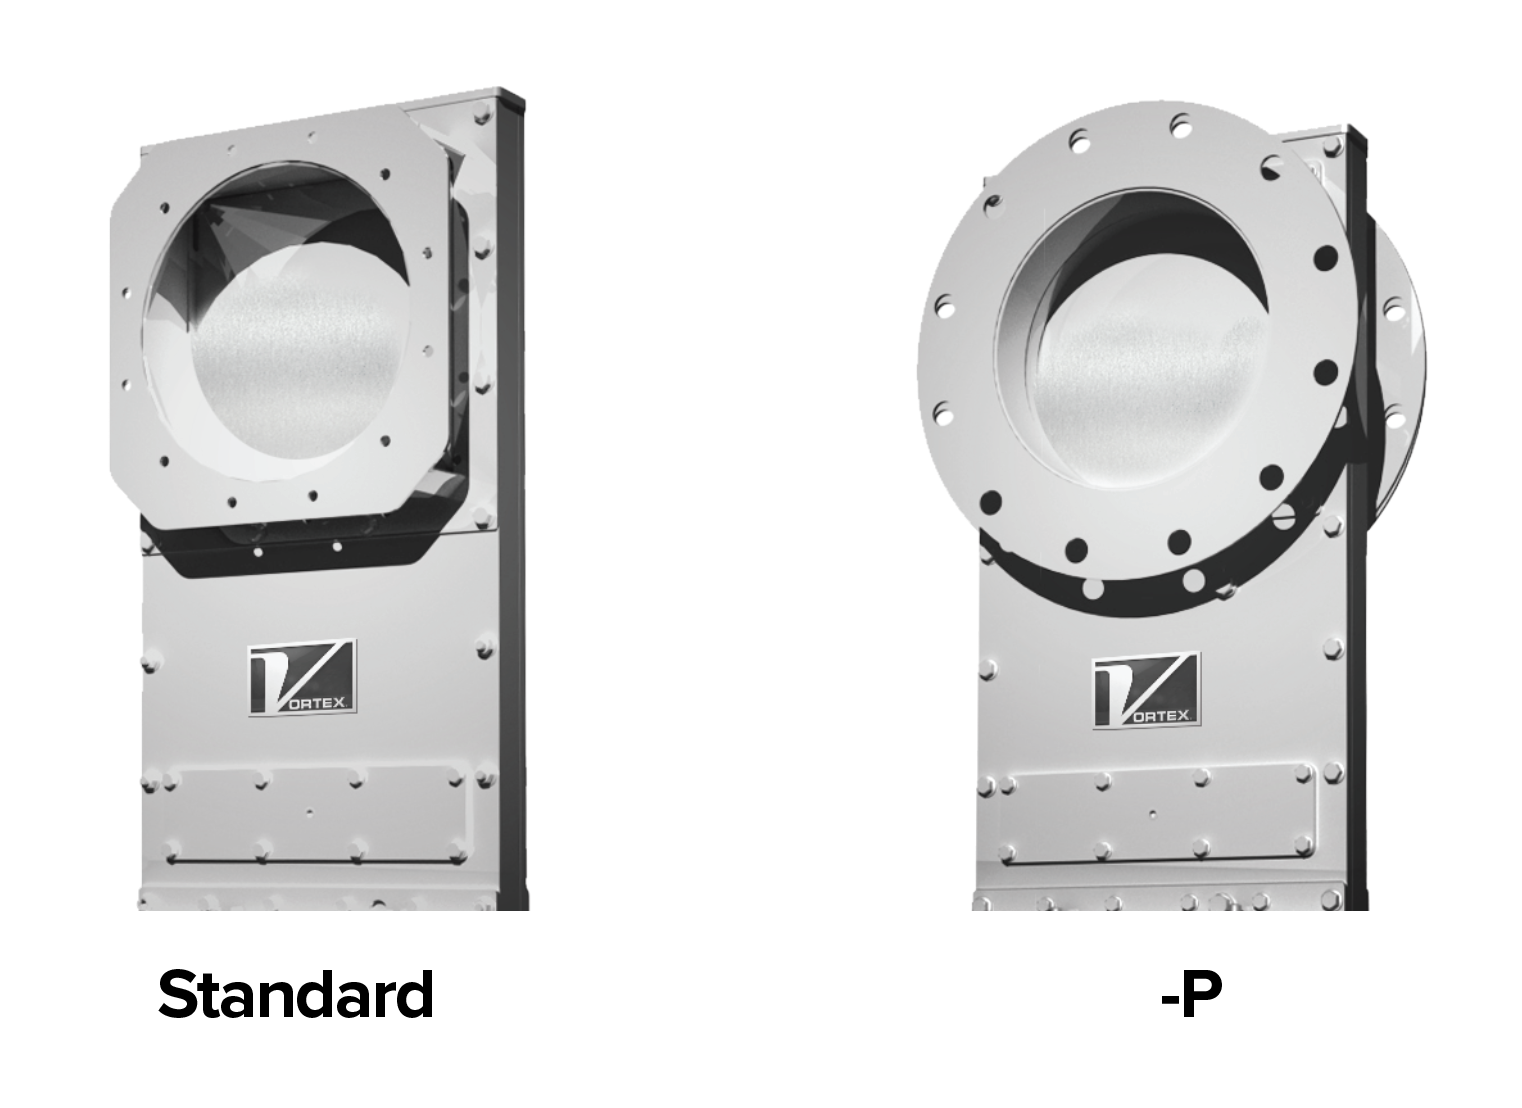 Clear Action Gate options. 1. Standard, 2. -P